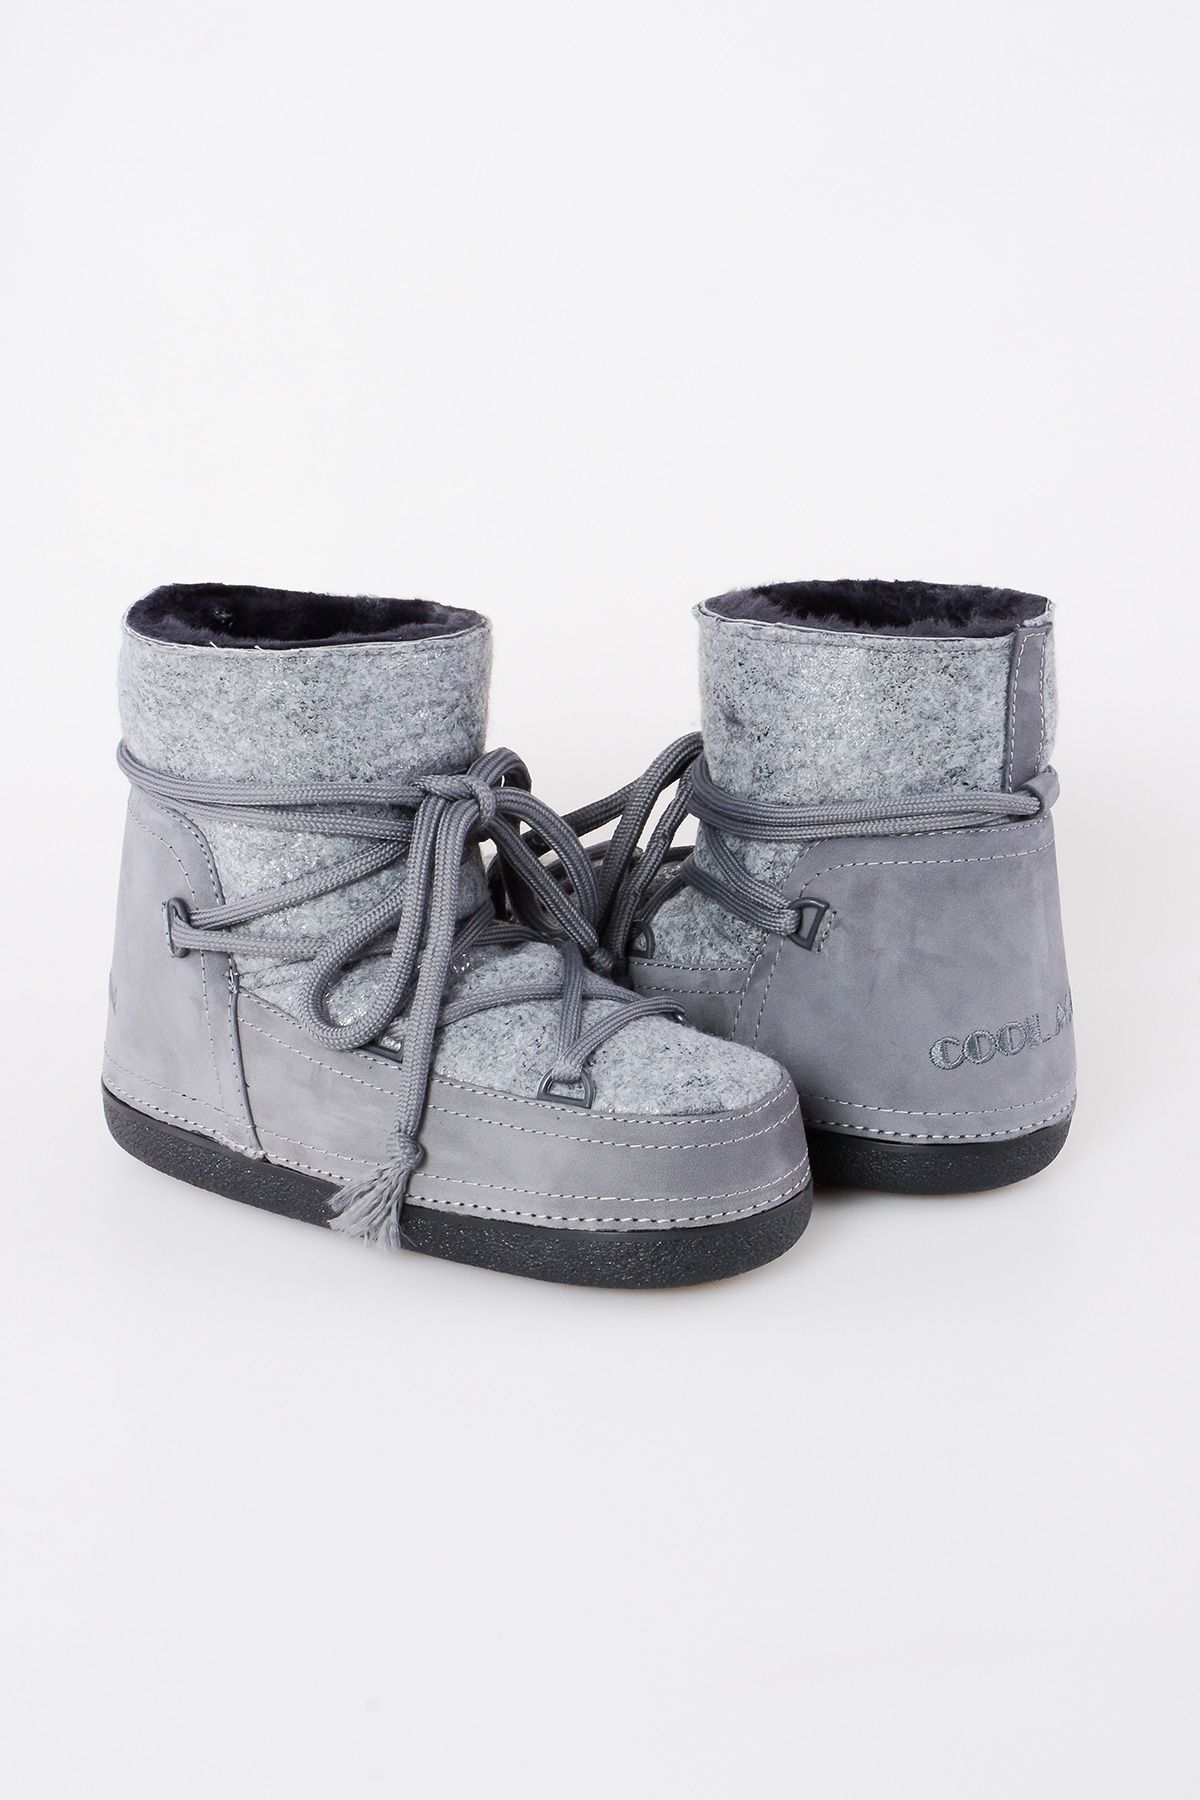 Cool Moon Genuine Shearling & Cashmere Women's Snowboots 251015 Gray